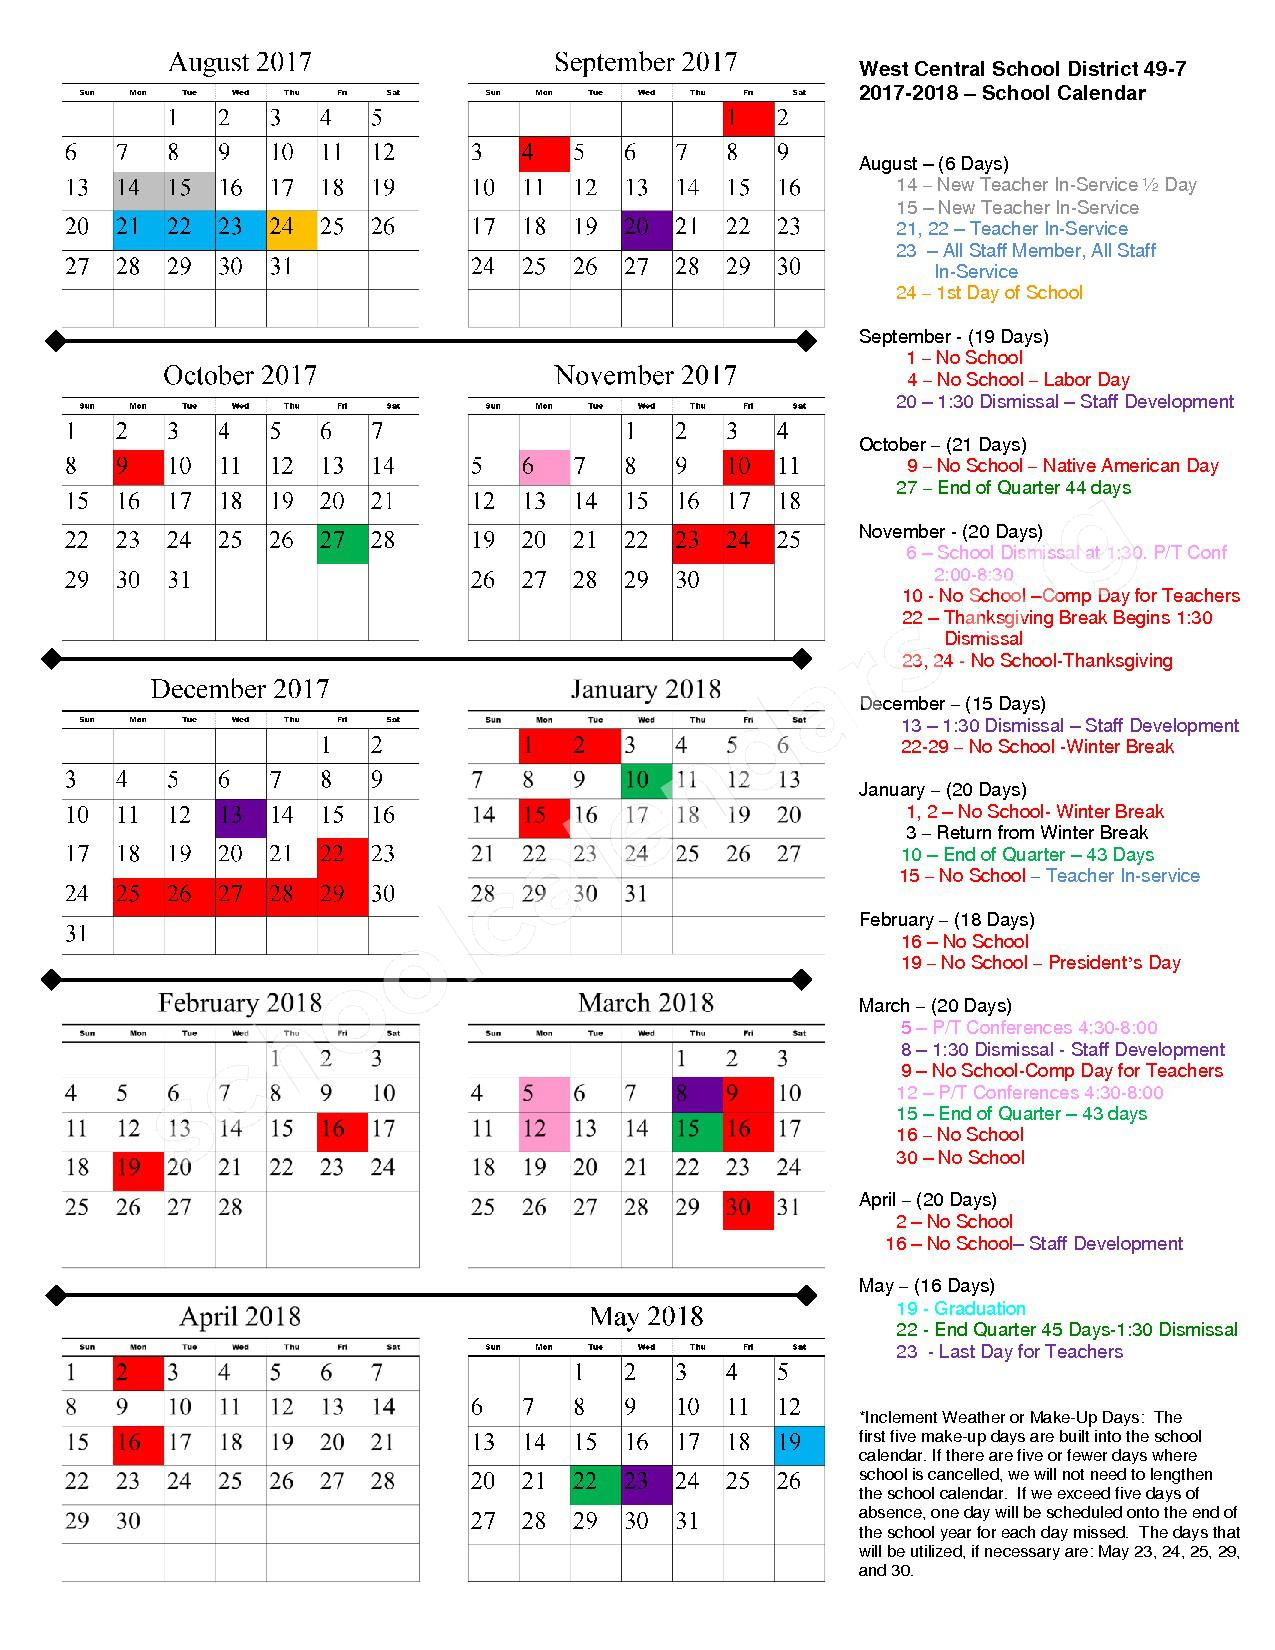 2017 - 2018 School Calendar – West Central School District 49-7 – page 1